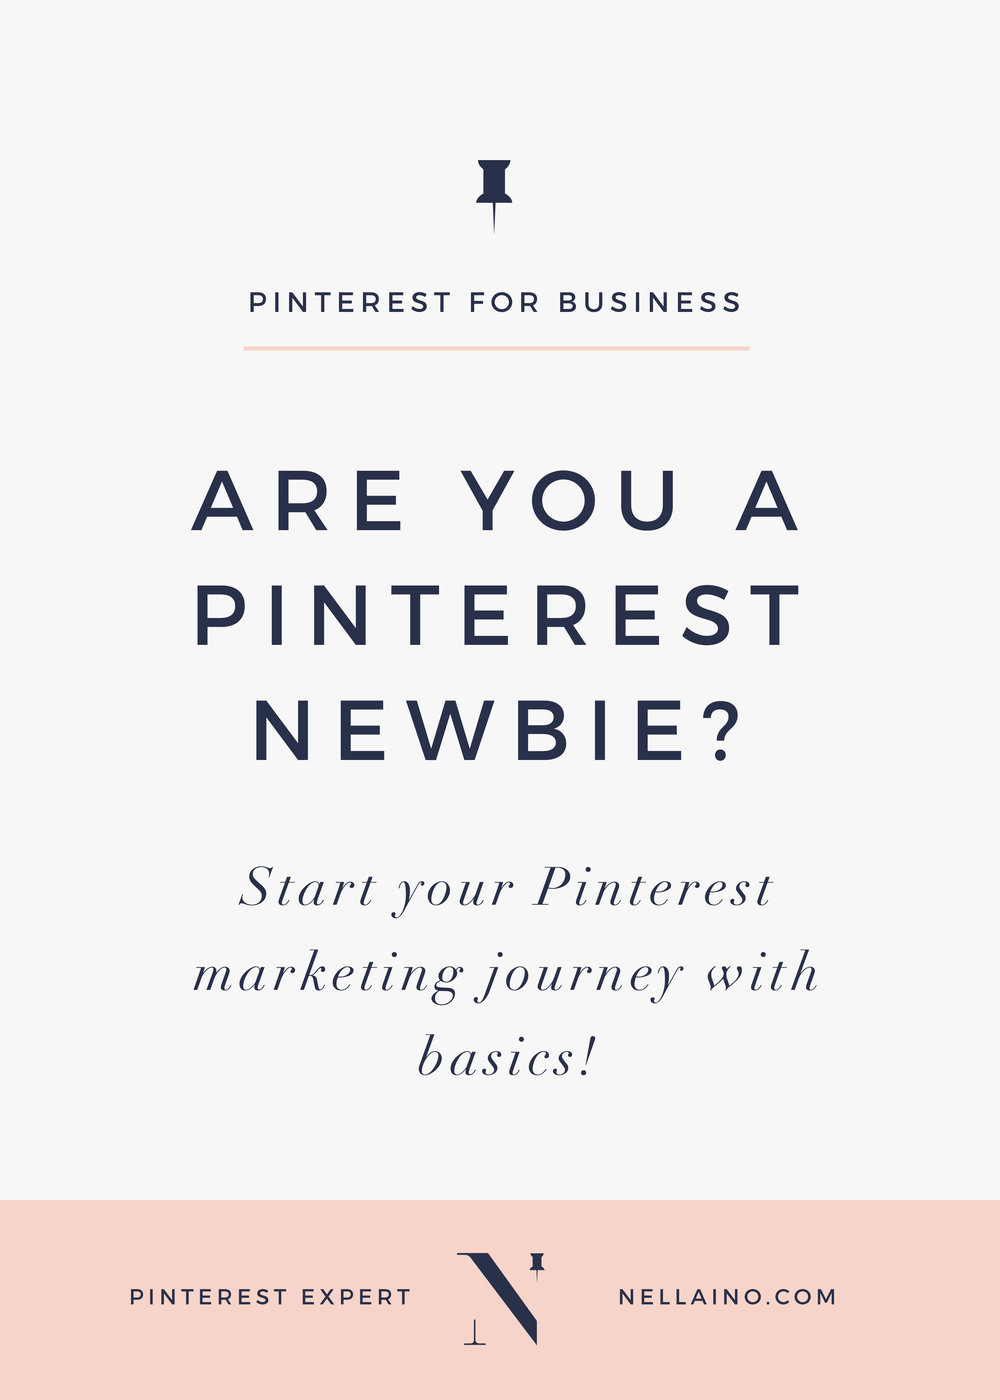 Pinterest-newbie-for-pinterest-marketing.jpg